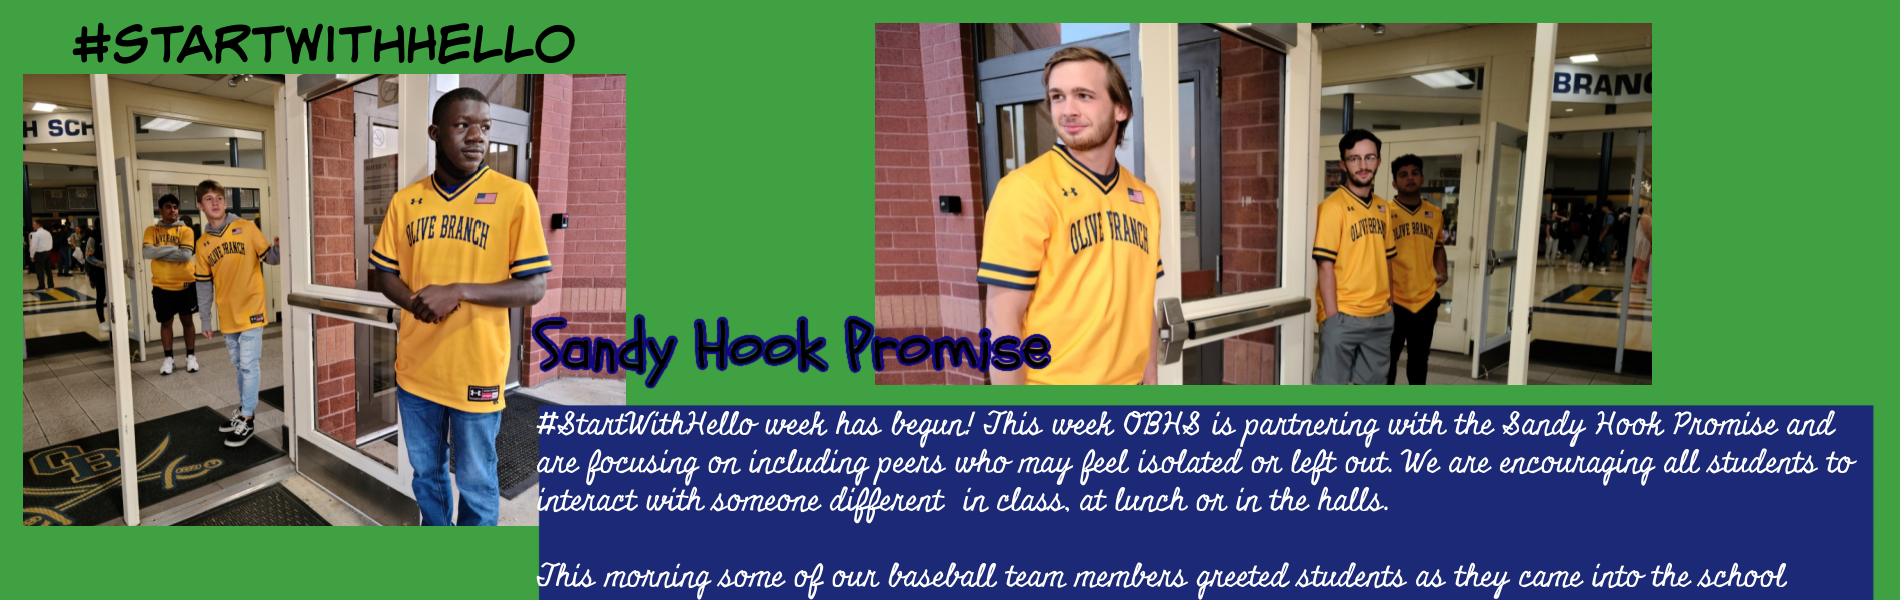 Baseball team welcomes students to school today as part of the Sandy Hook Promise